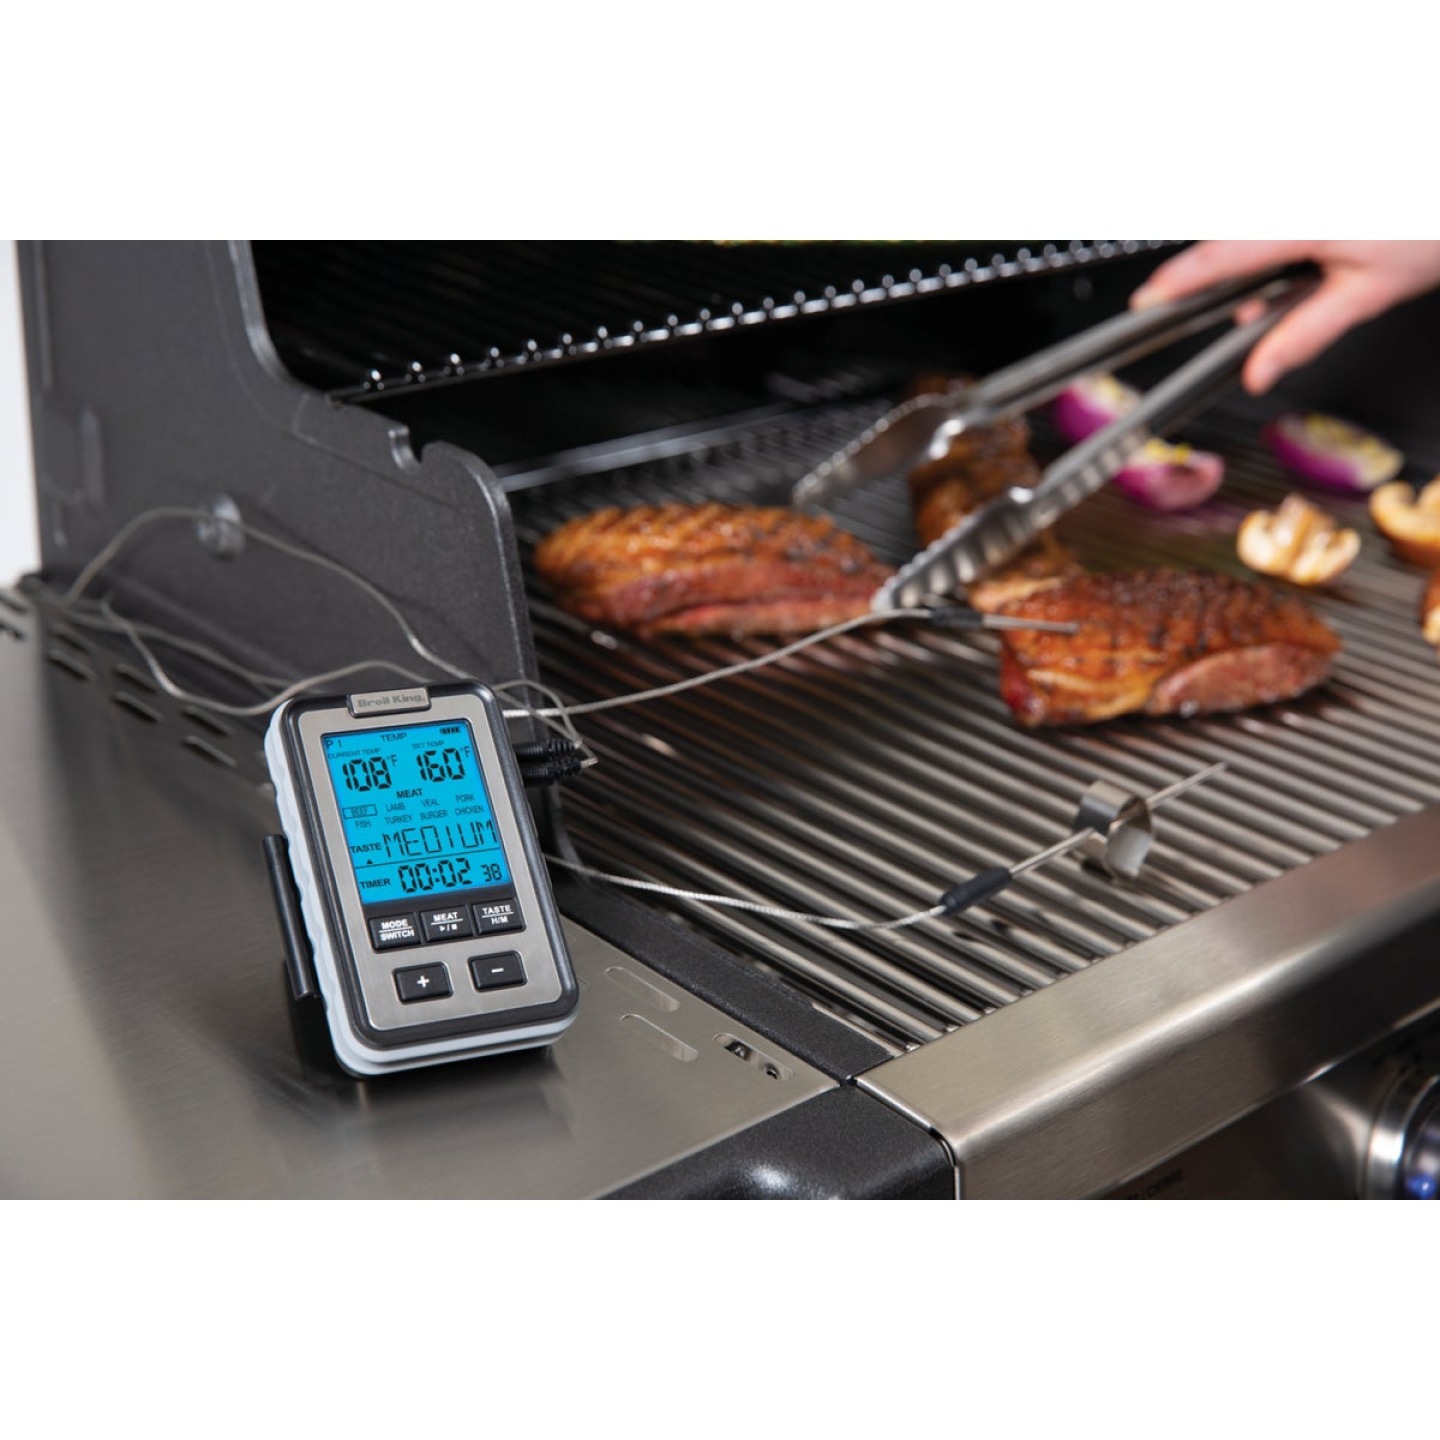 Broil King Digital Side Shelf Dual Probe Thermometer Image 2